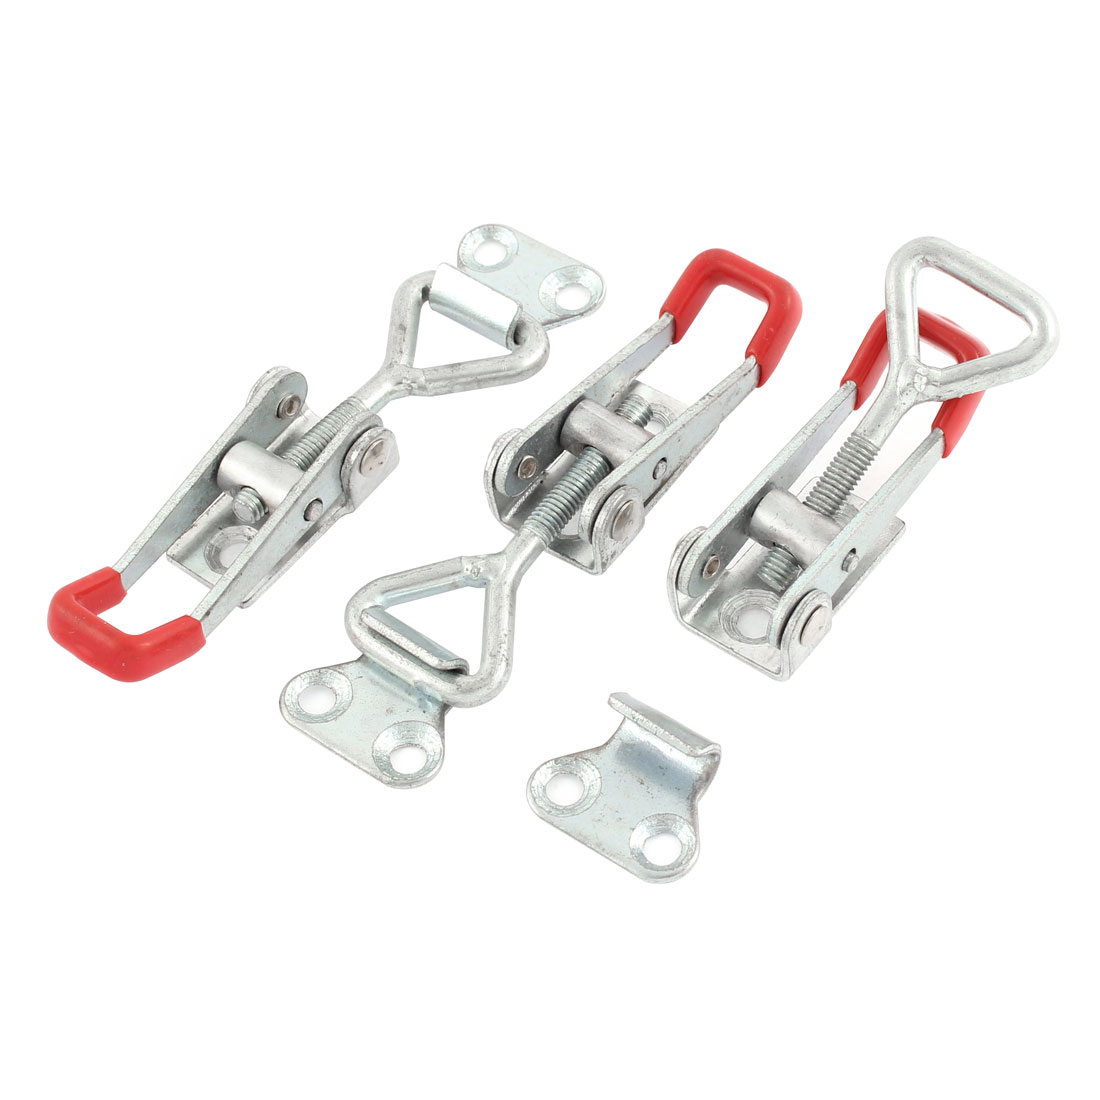 Toolbox Case Hardware Metal Toggle Latch Catch Clasp 9.5cm Length 3 PCS